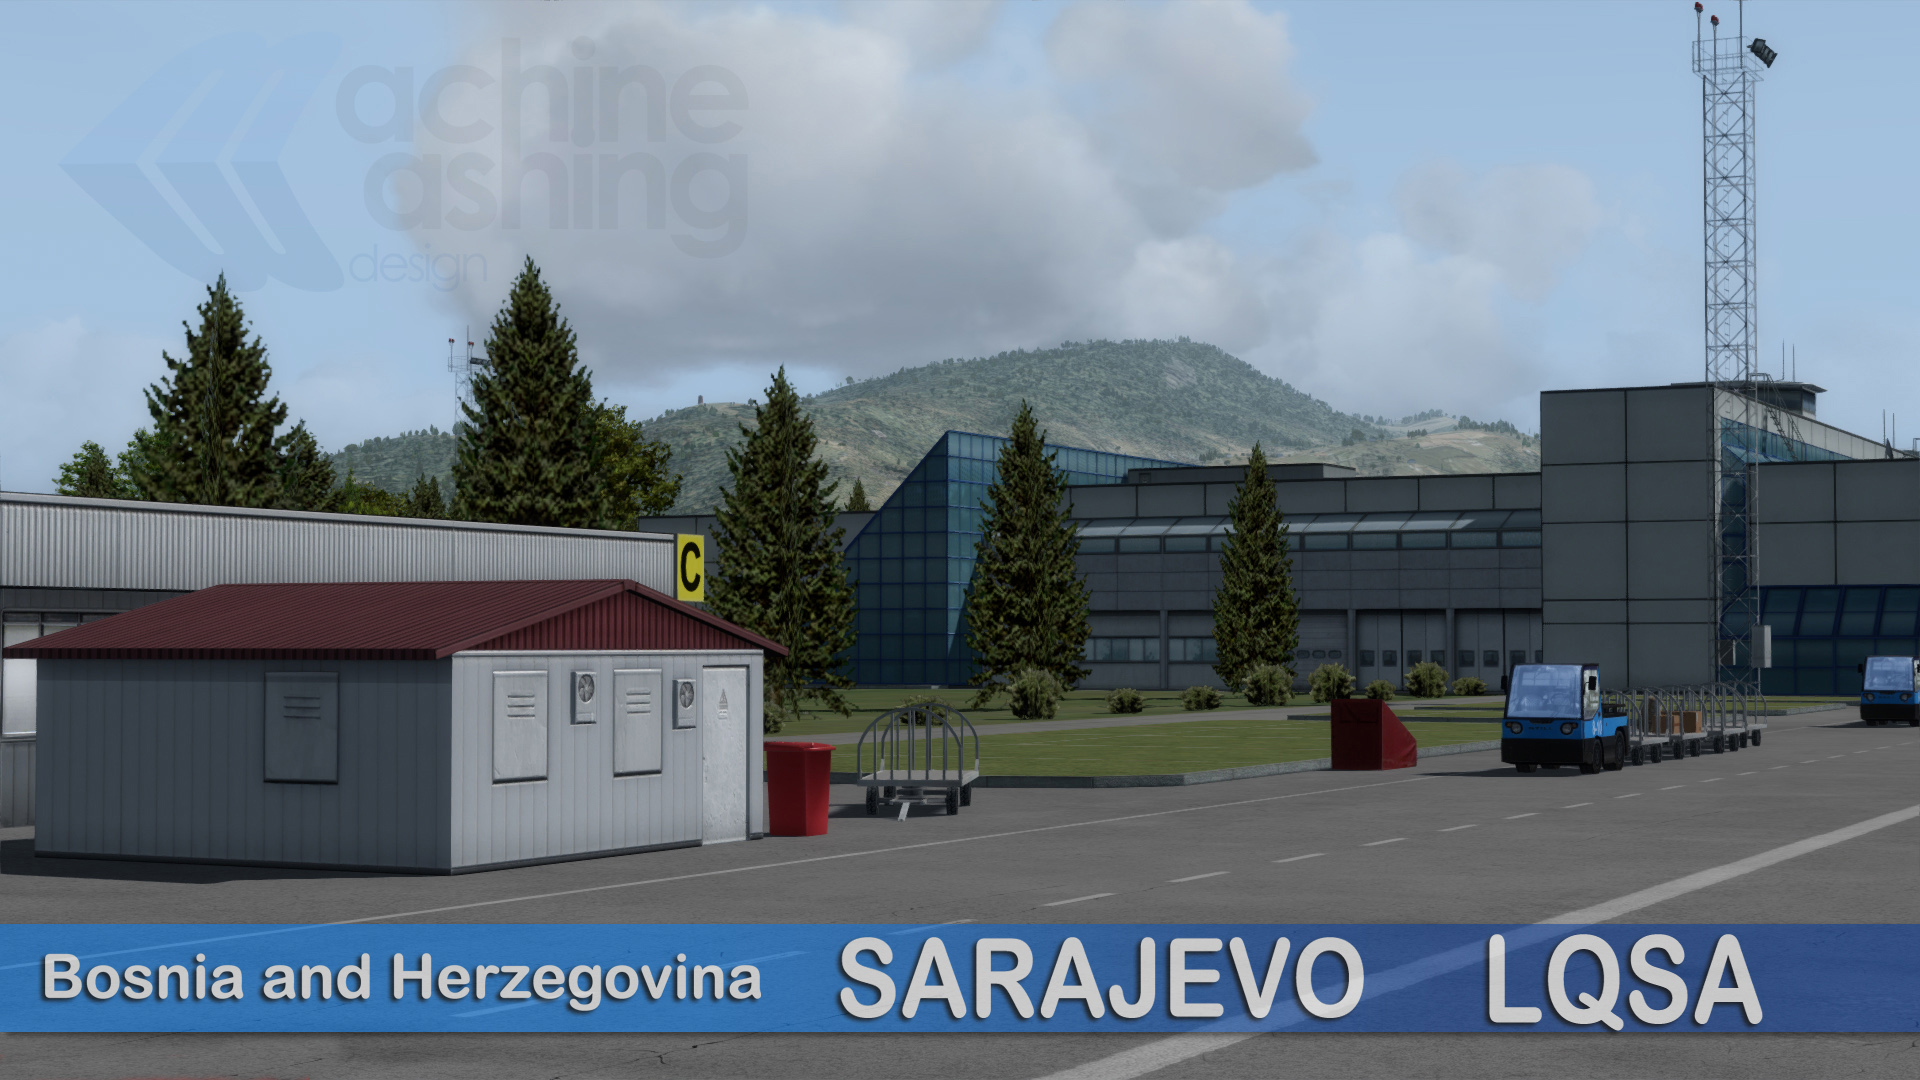 MACHINE WASHING DESIGN - SARAJEVO LQSA FSX P3D